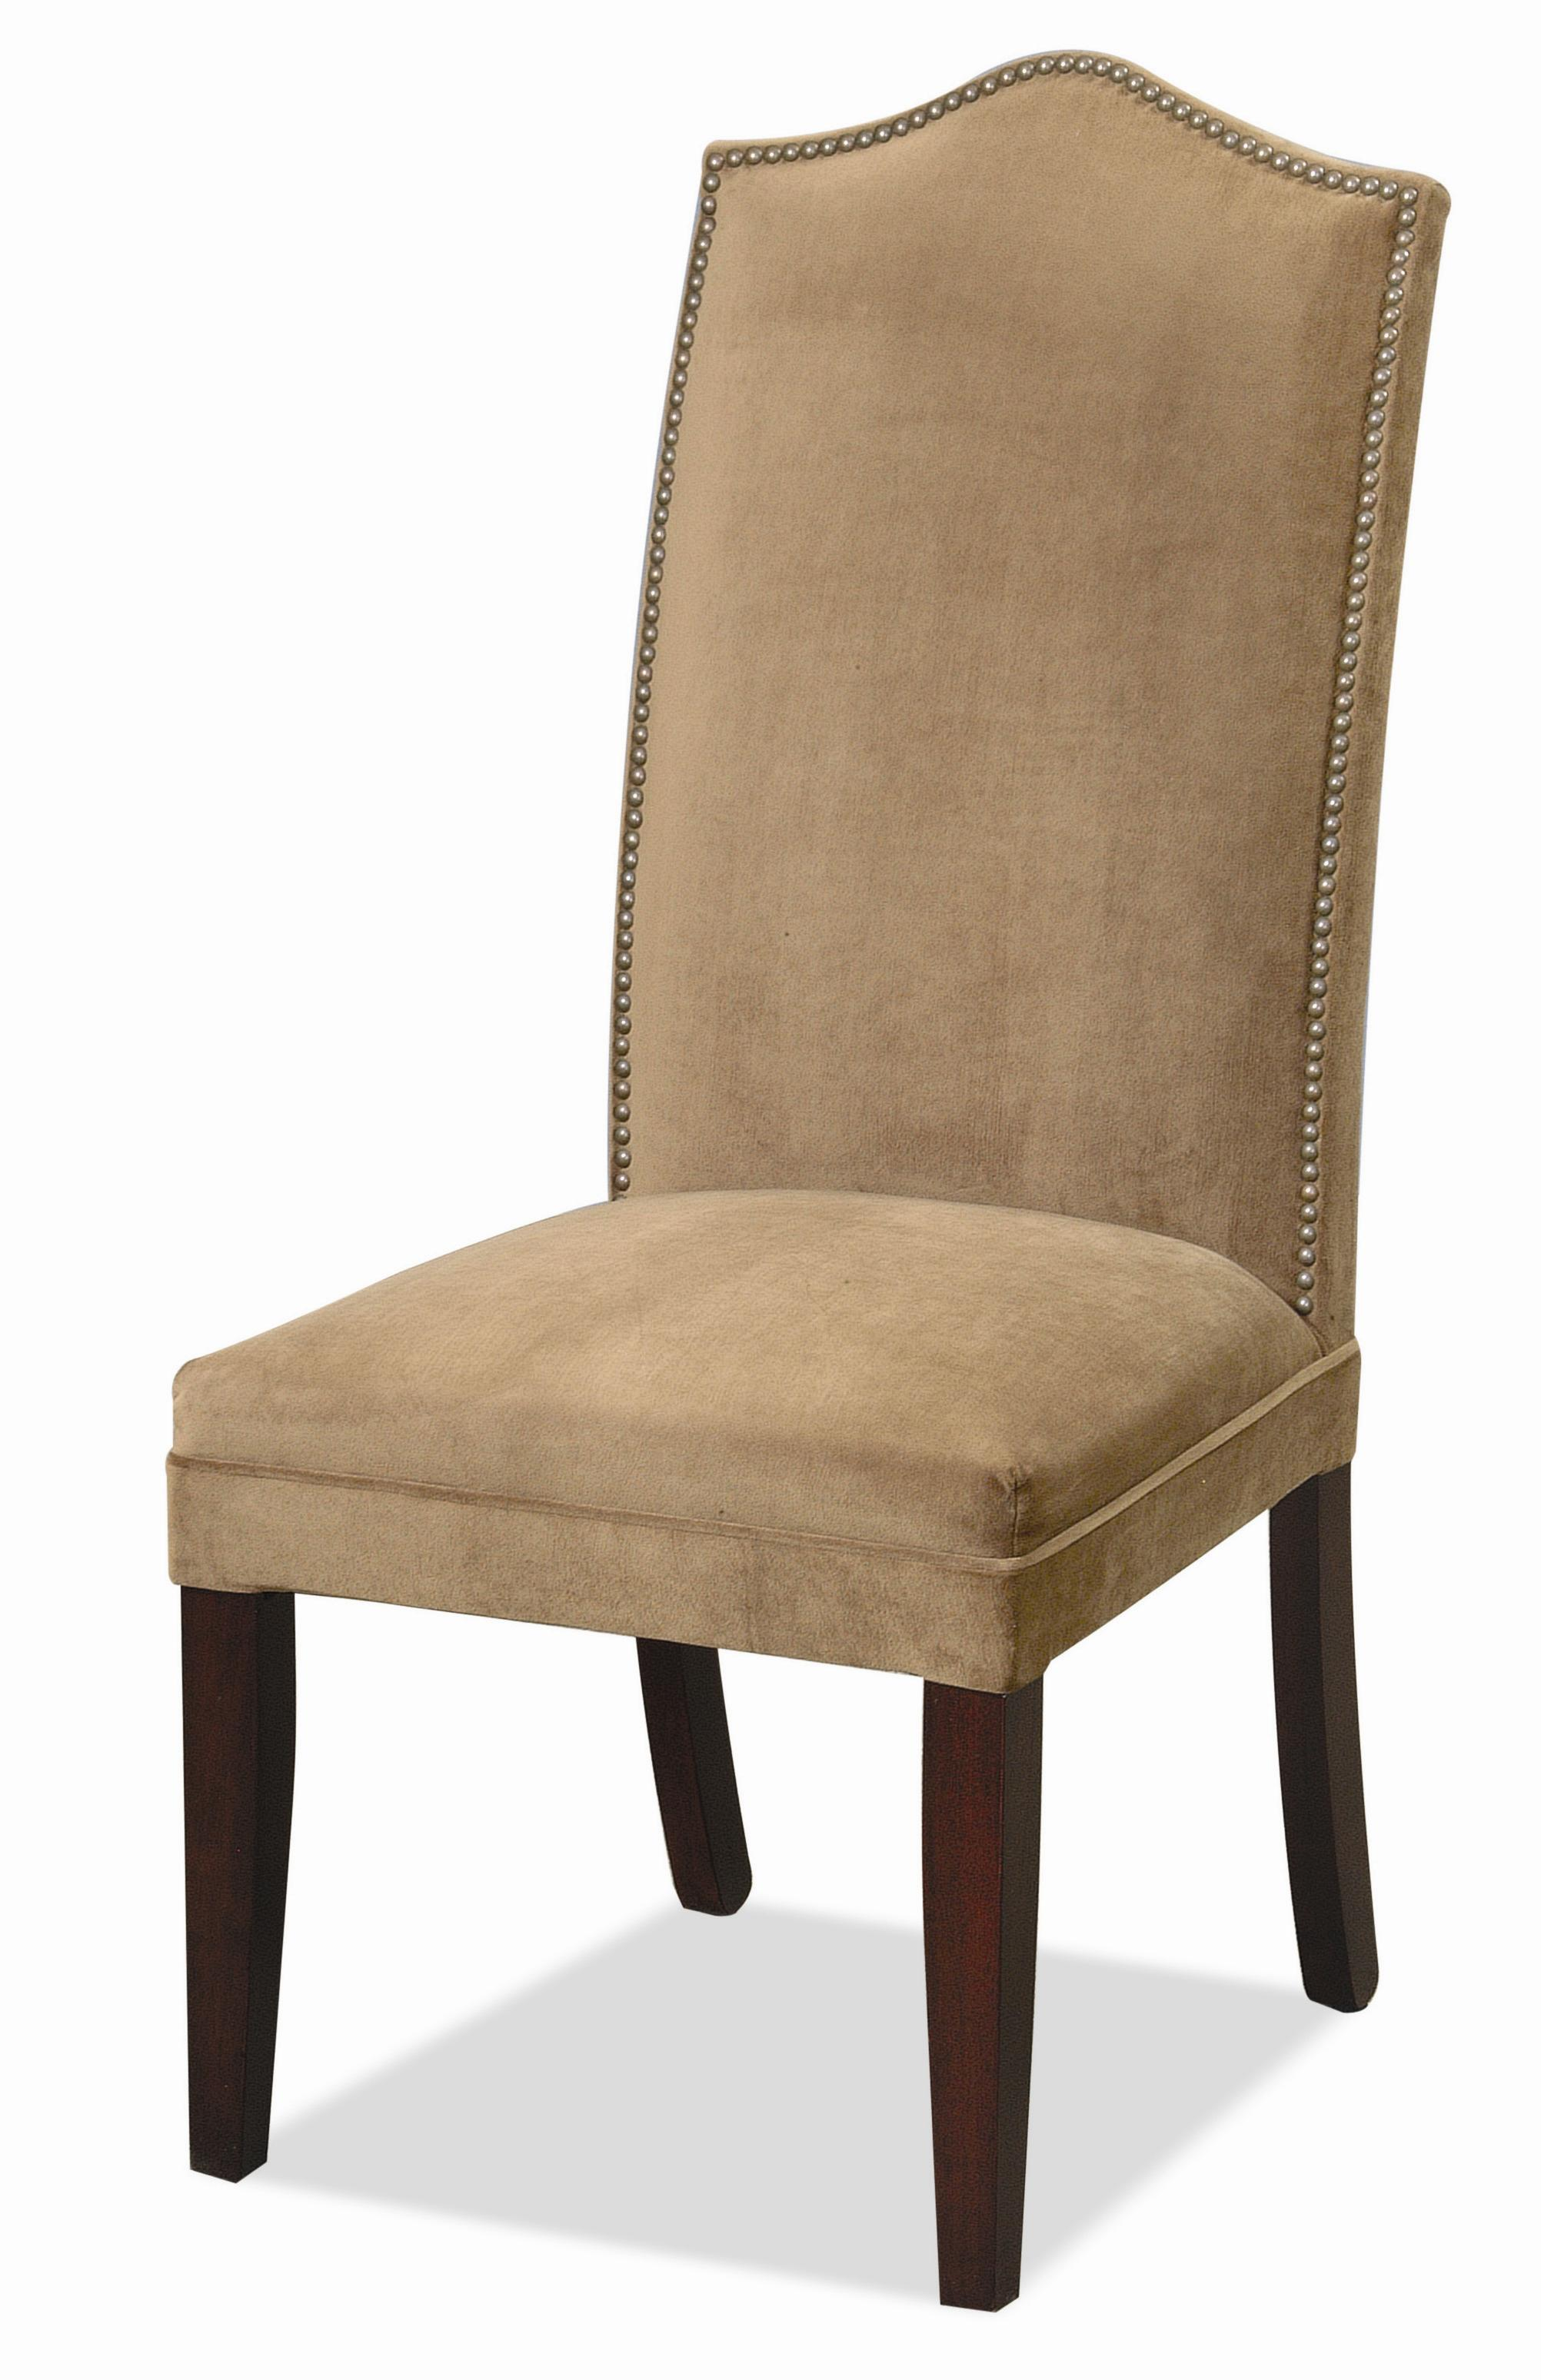 Dining Side Chair With Nail Trim By CMI